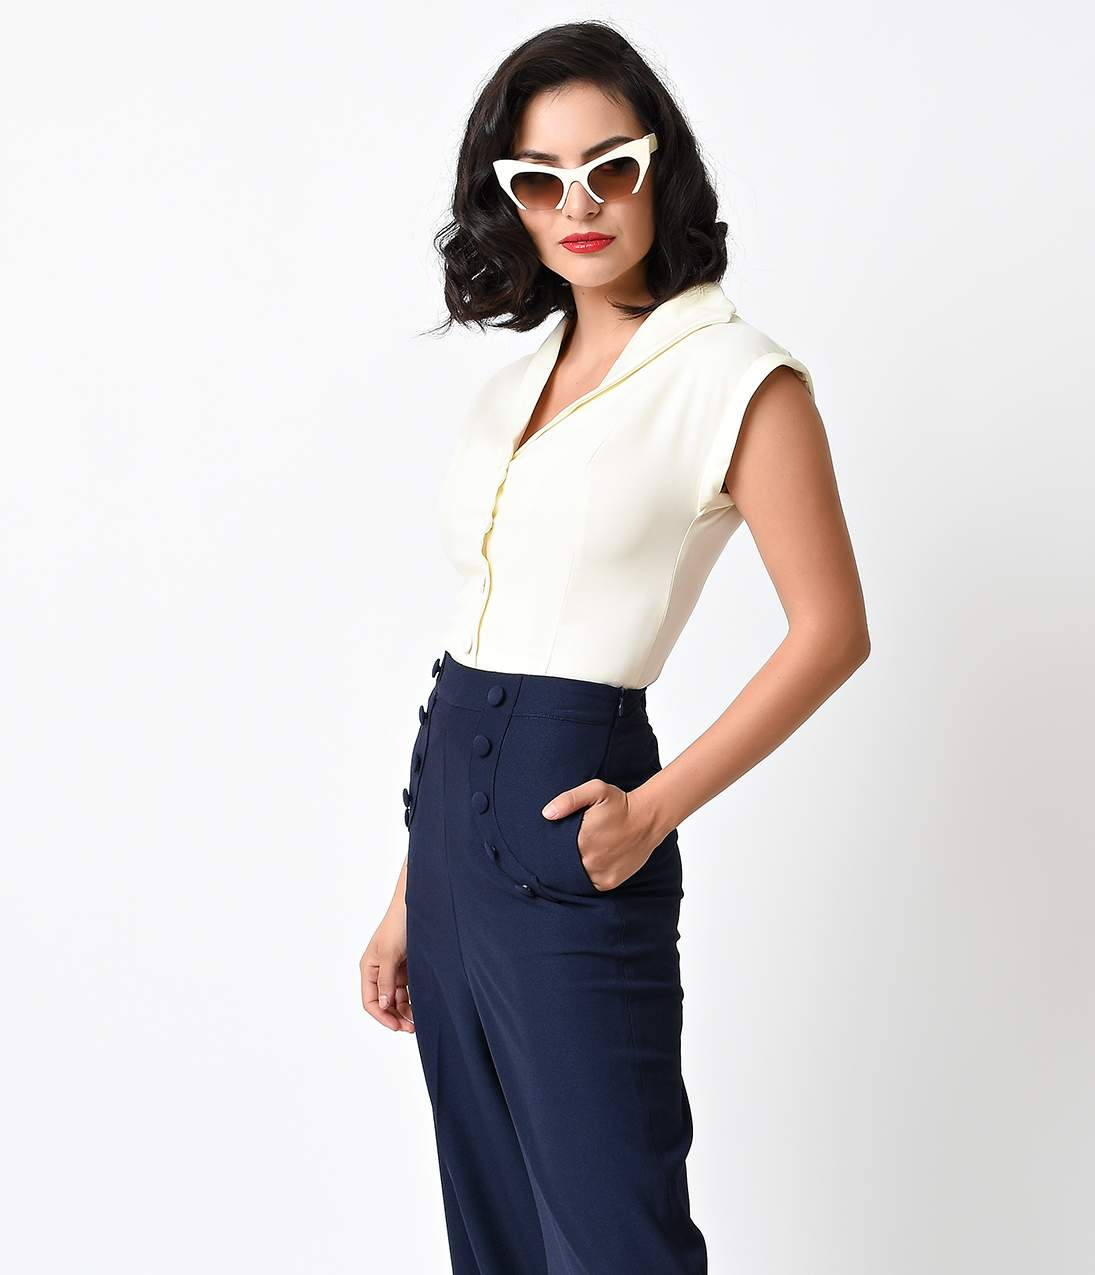 Vintage & Retro Shirts, Halter Tops, Blouses Banned Vintage Off White Button Up Cap Sleeve Blouse $48.00 AT vintagedancer.com